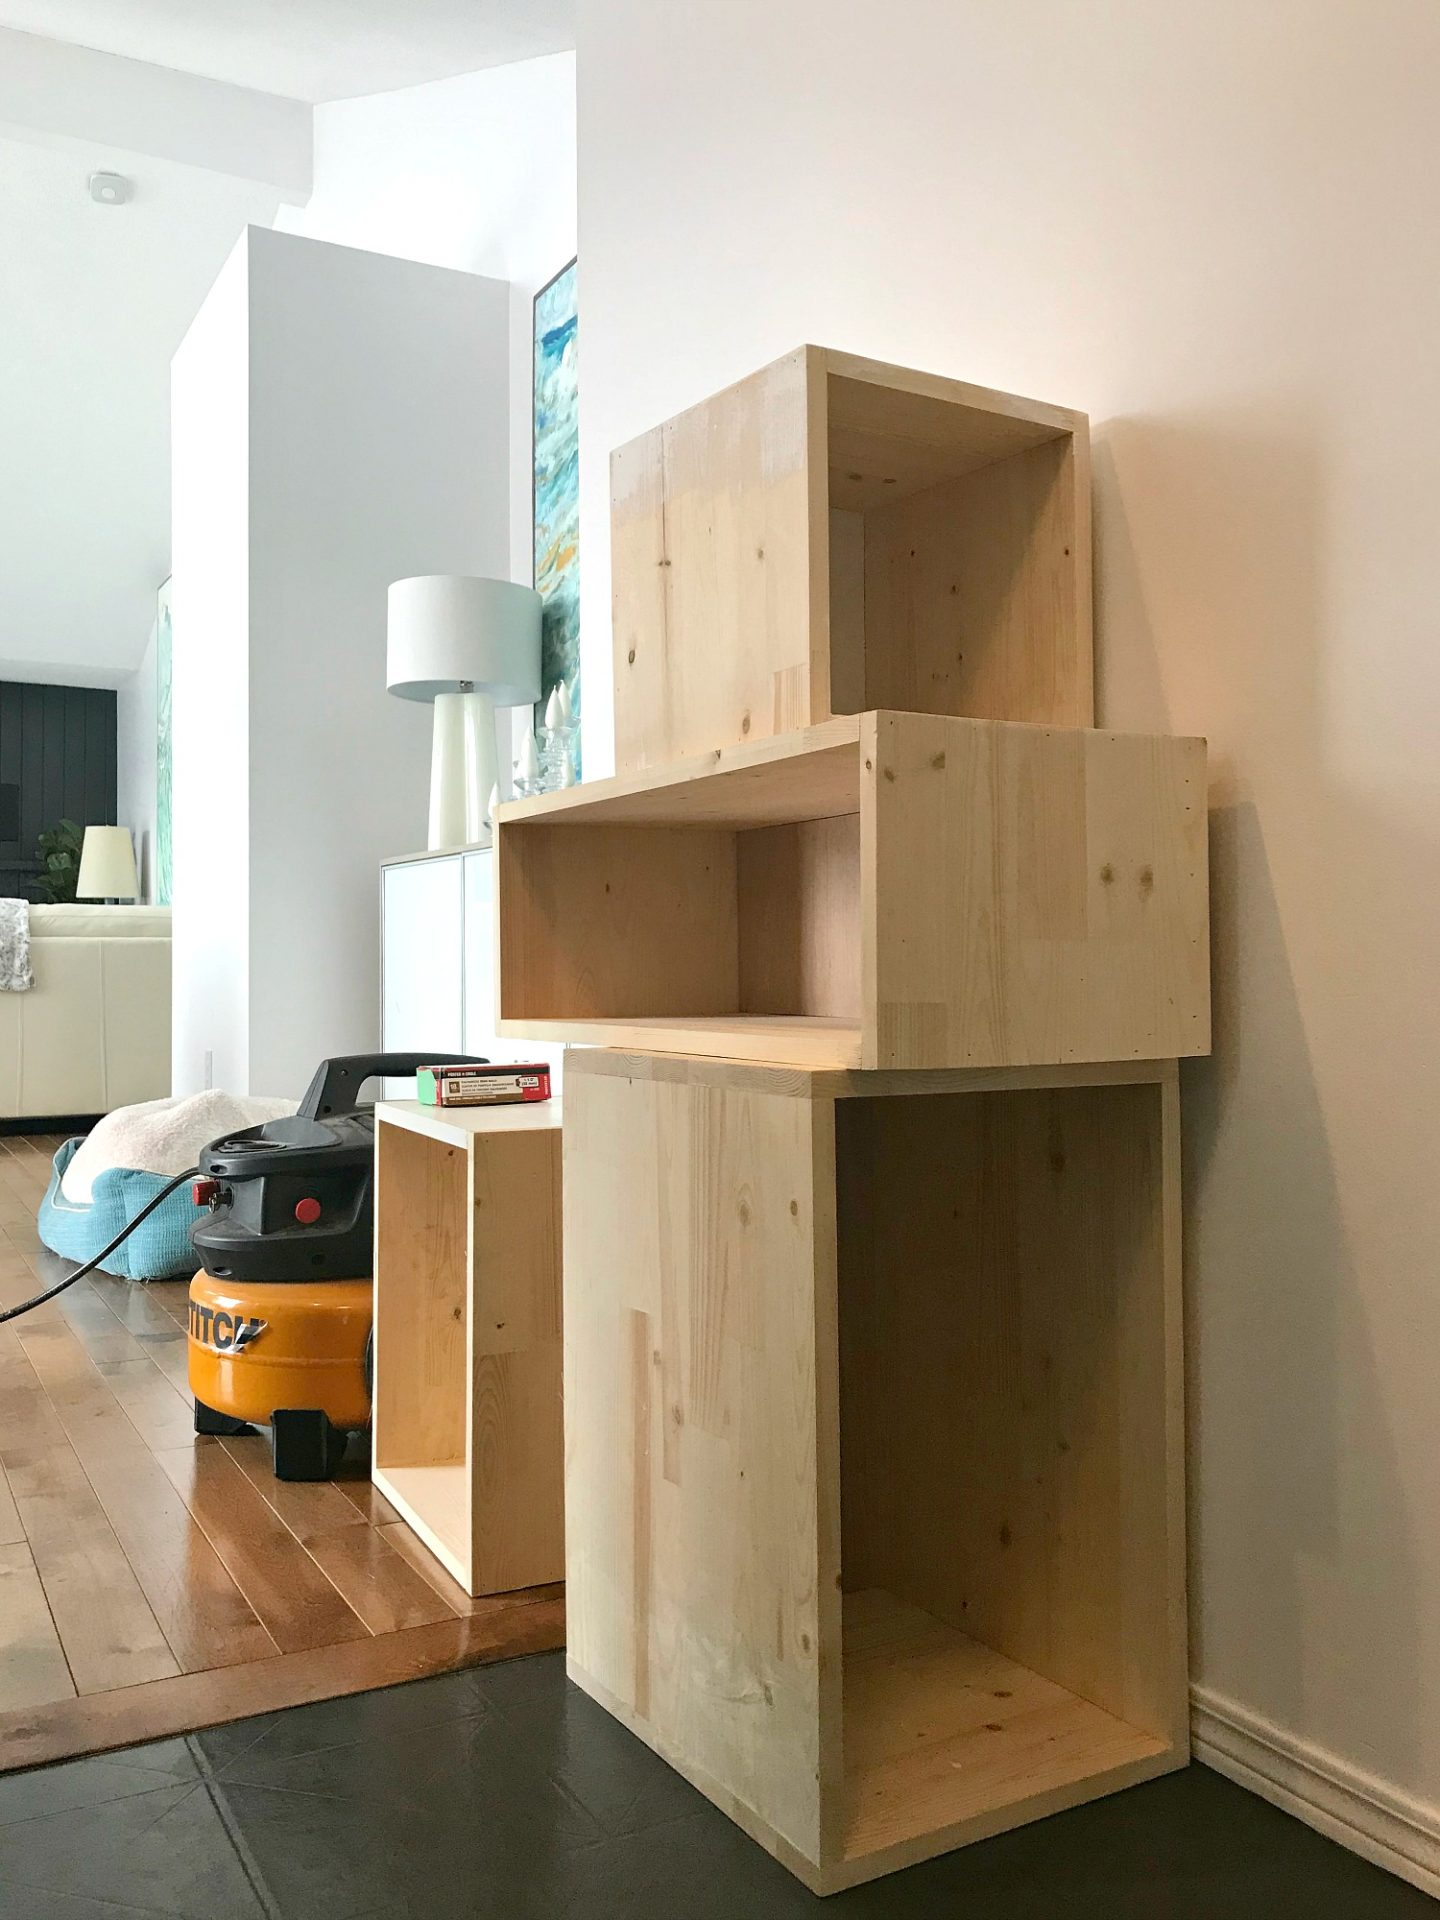 How to Build Wall Cubbies   Fresh Take on Kitchen Open Shelving. Wall Cubbies DIY Tutorial - Love These Wall Cubbies Shelves #cubbies #diystorage #openshelving